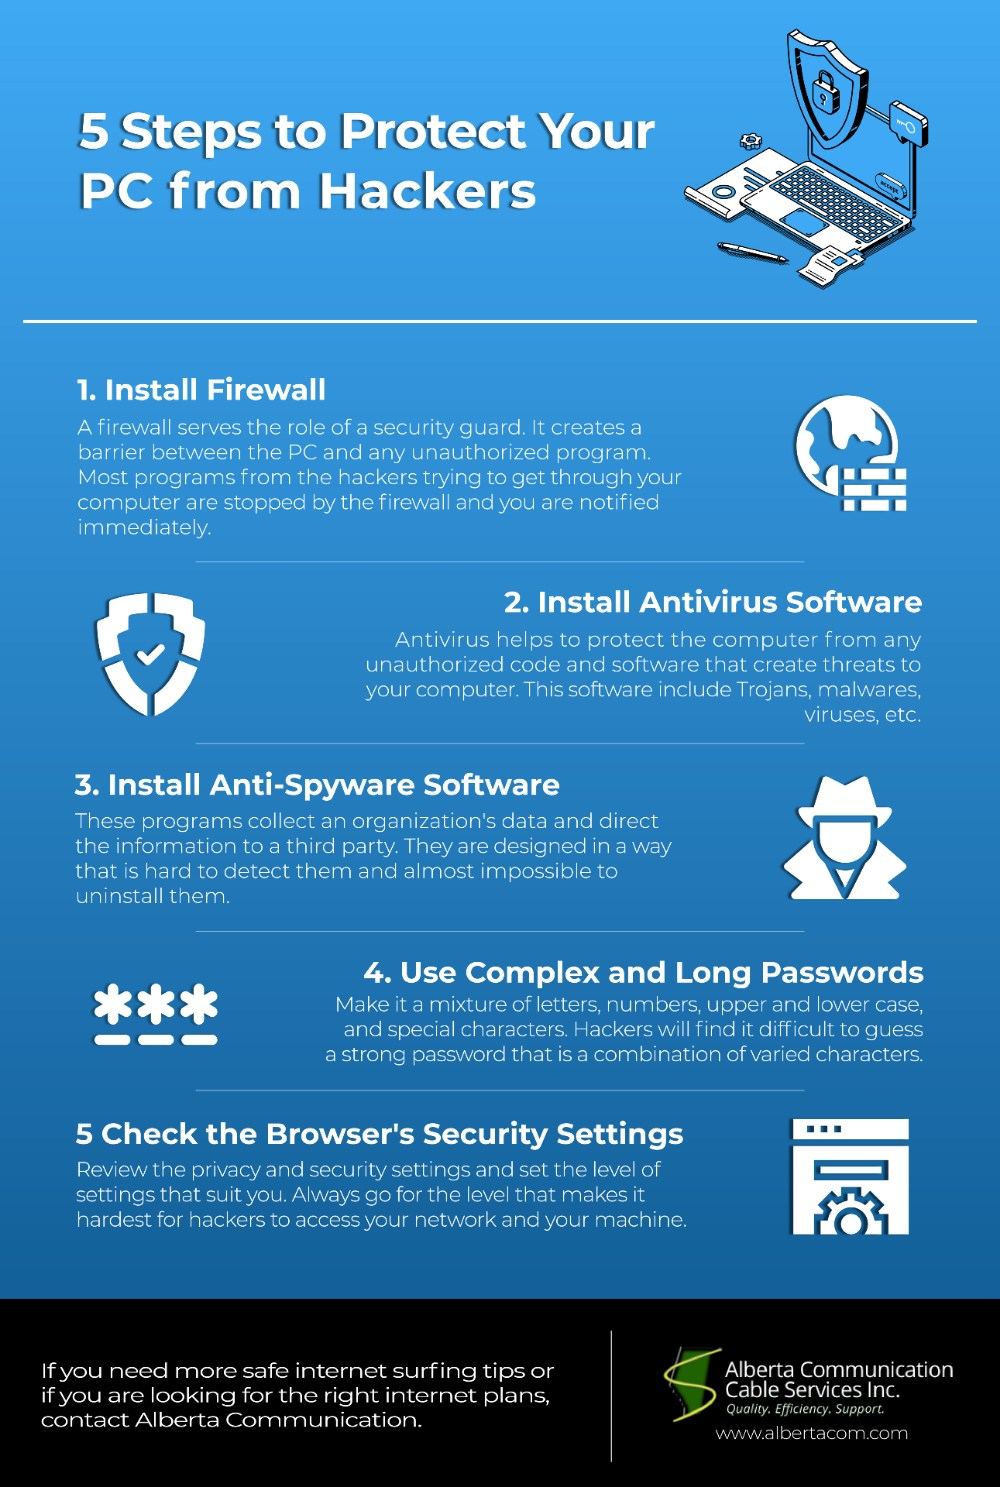 Steps to Protect Your PC from Hackers